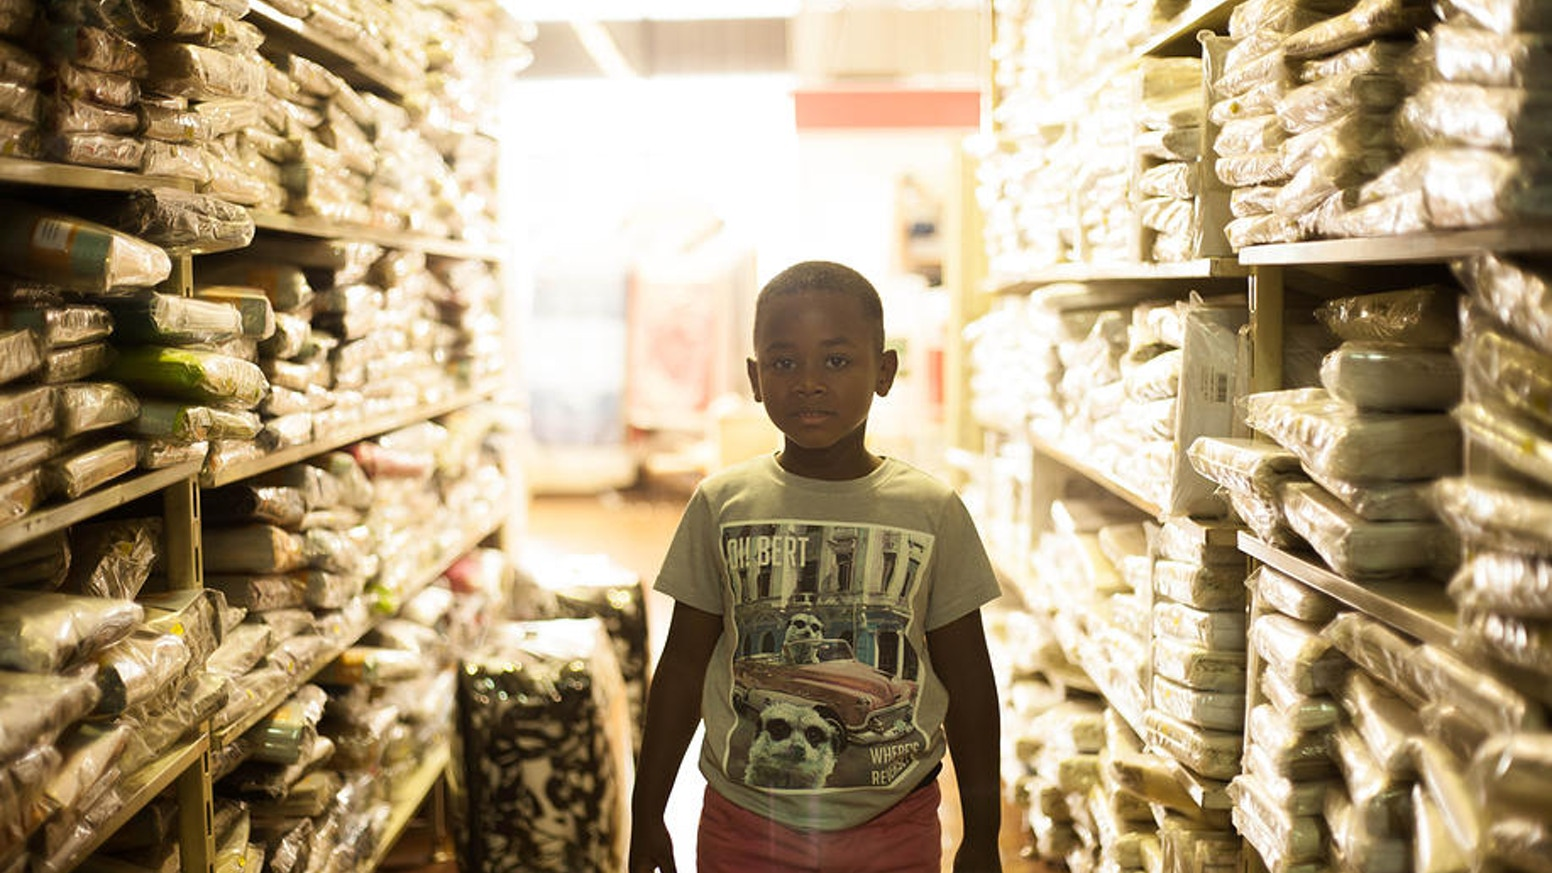 A South African documentary which explores the conflicted connections between business and family, community, and country. visit www.takingstockfilm.com